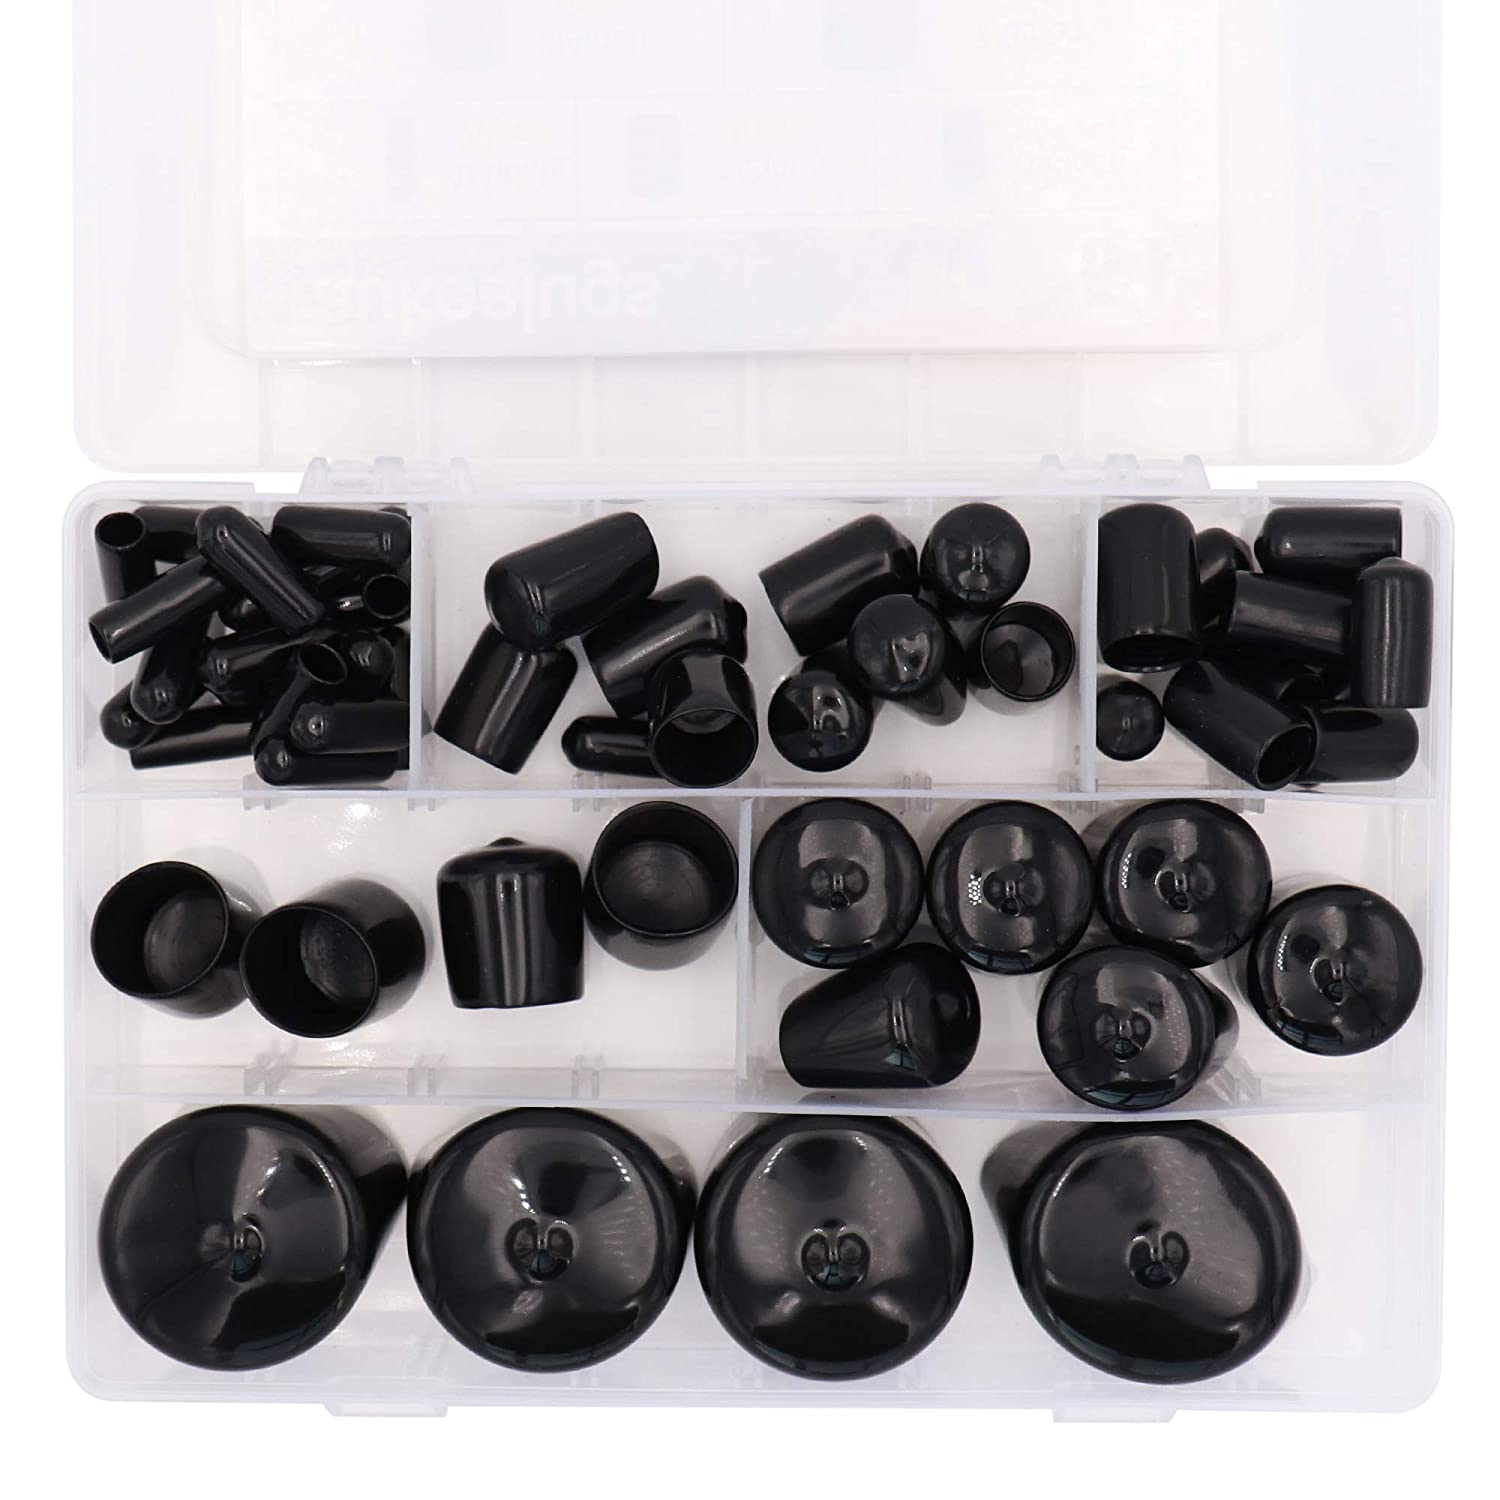 54pcs Black Pipe Post Bolt Screw Rubber Thread Protector Cover Vinyl Tube End Caps,Assorted 1//4-inch to 1 1//2-inch-6 Sizes